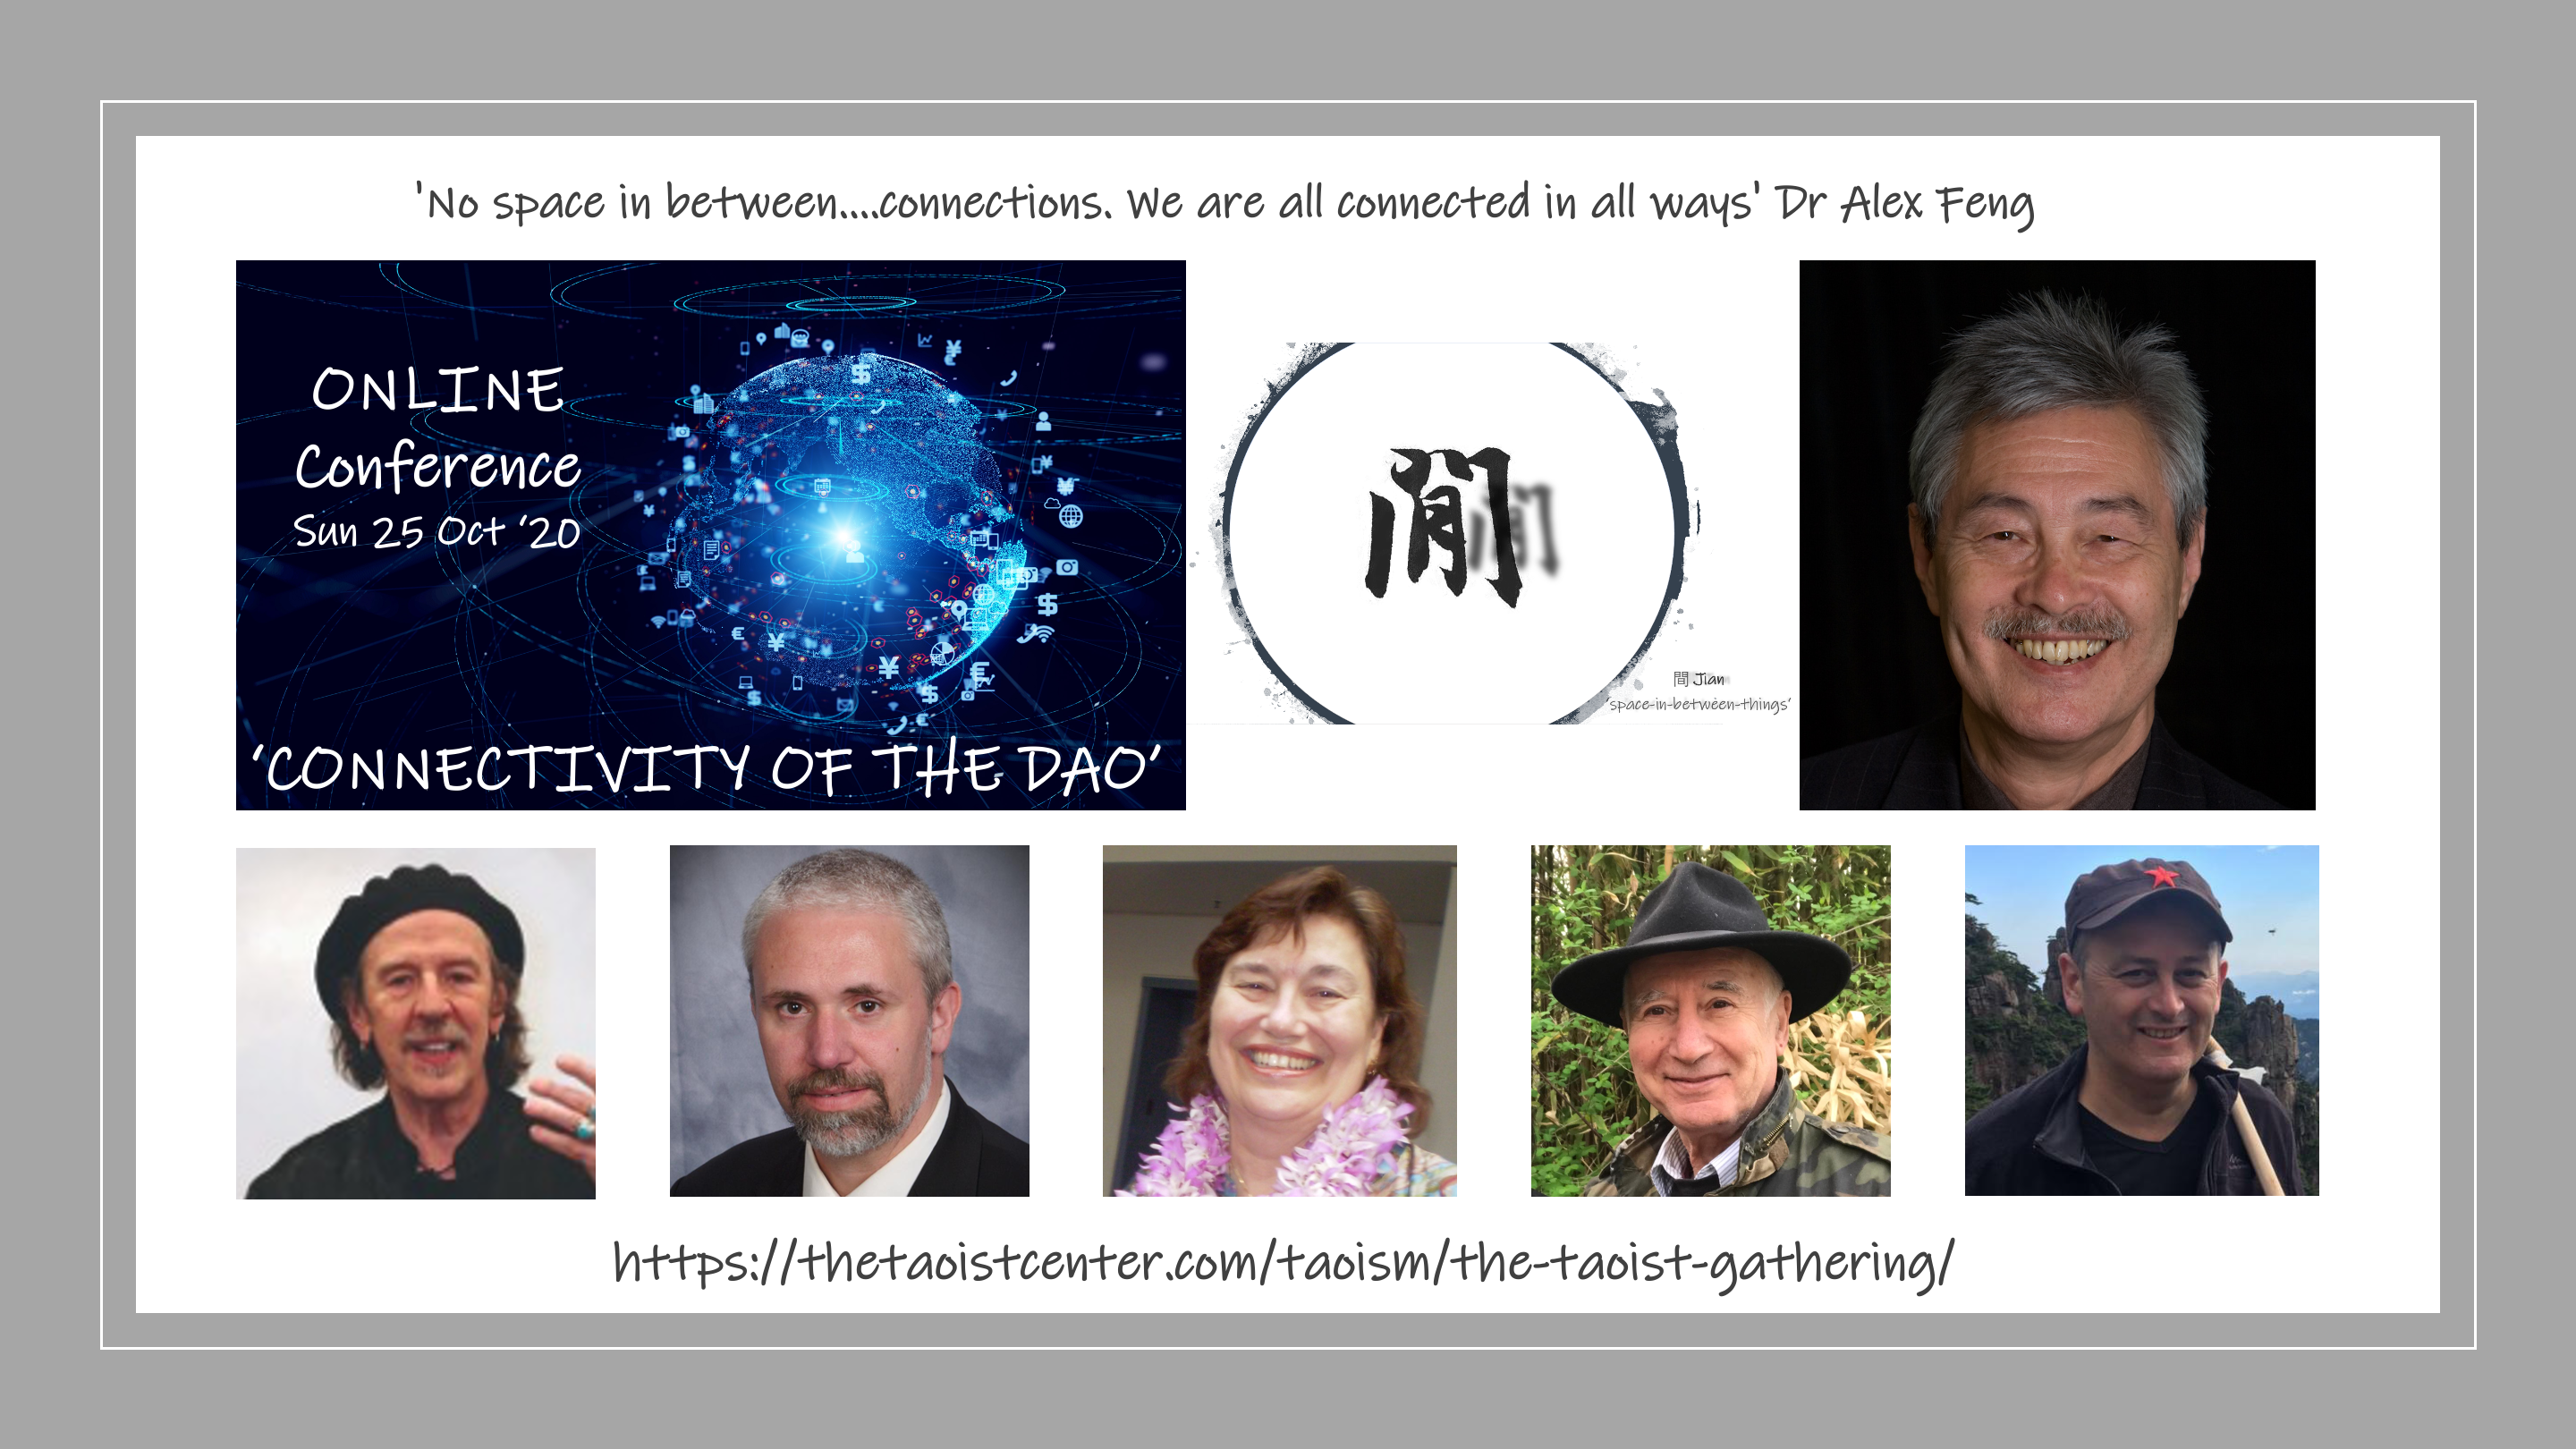 Wu Jian - Connectivity of the Dao - 17th Annual Taoist Gathering